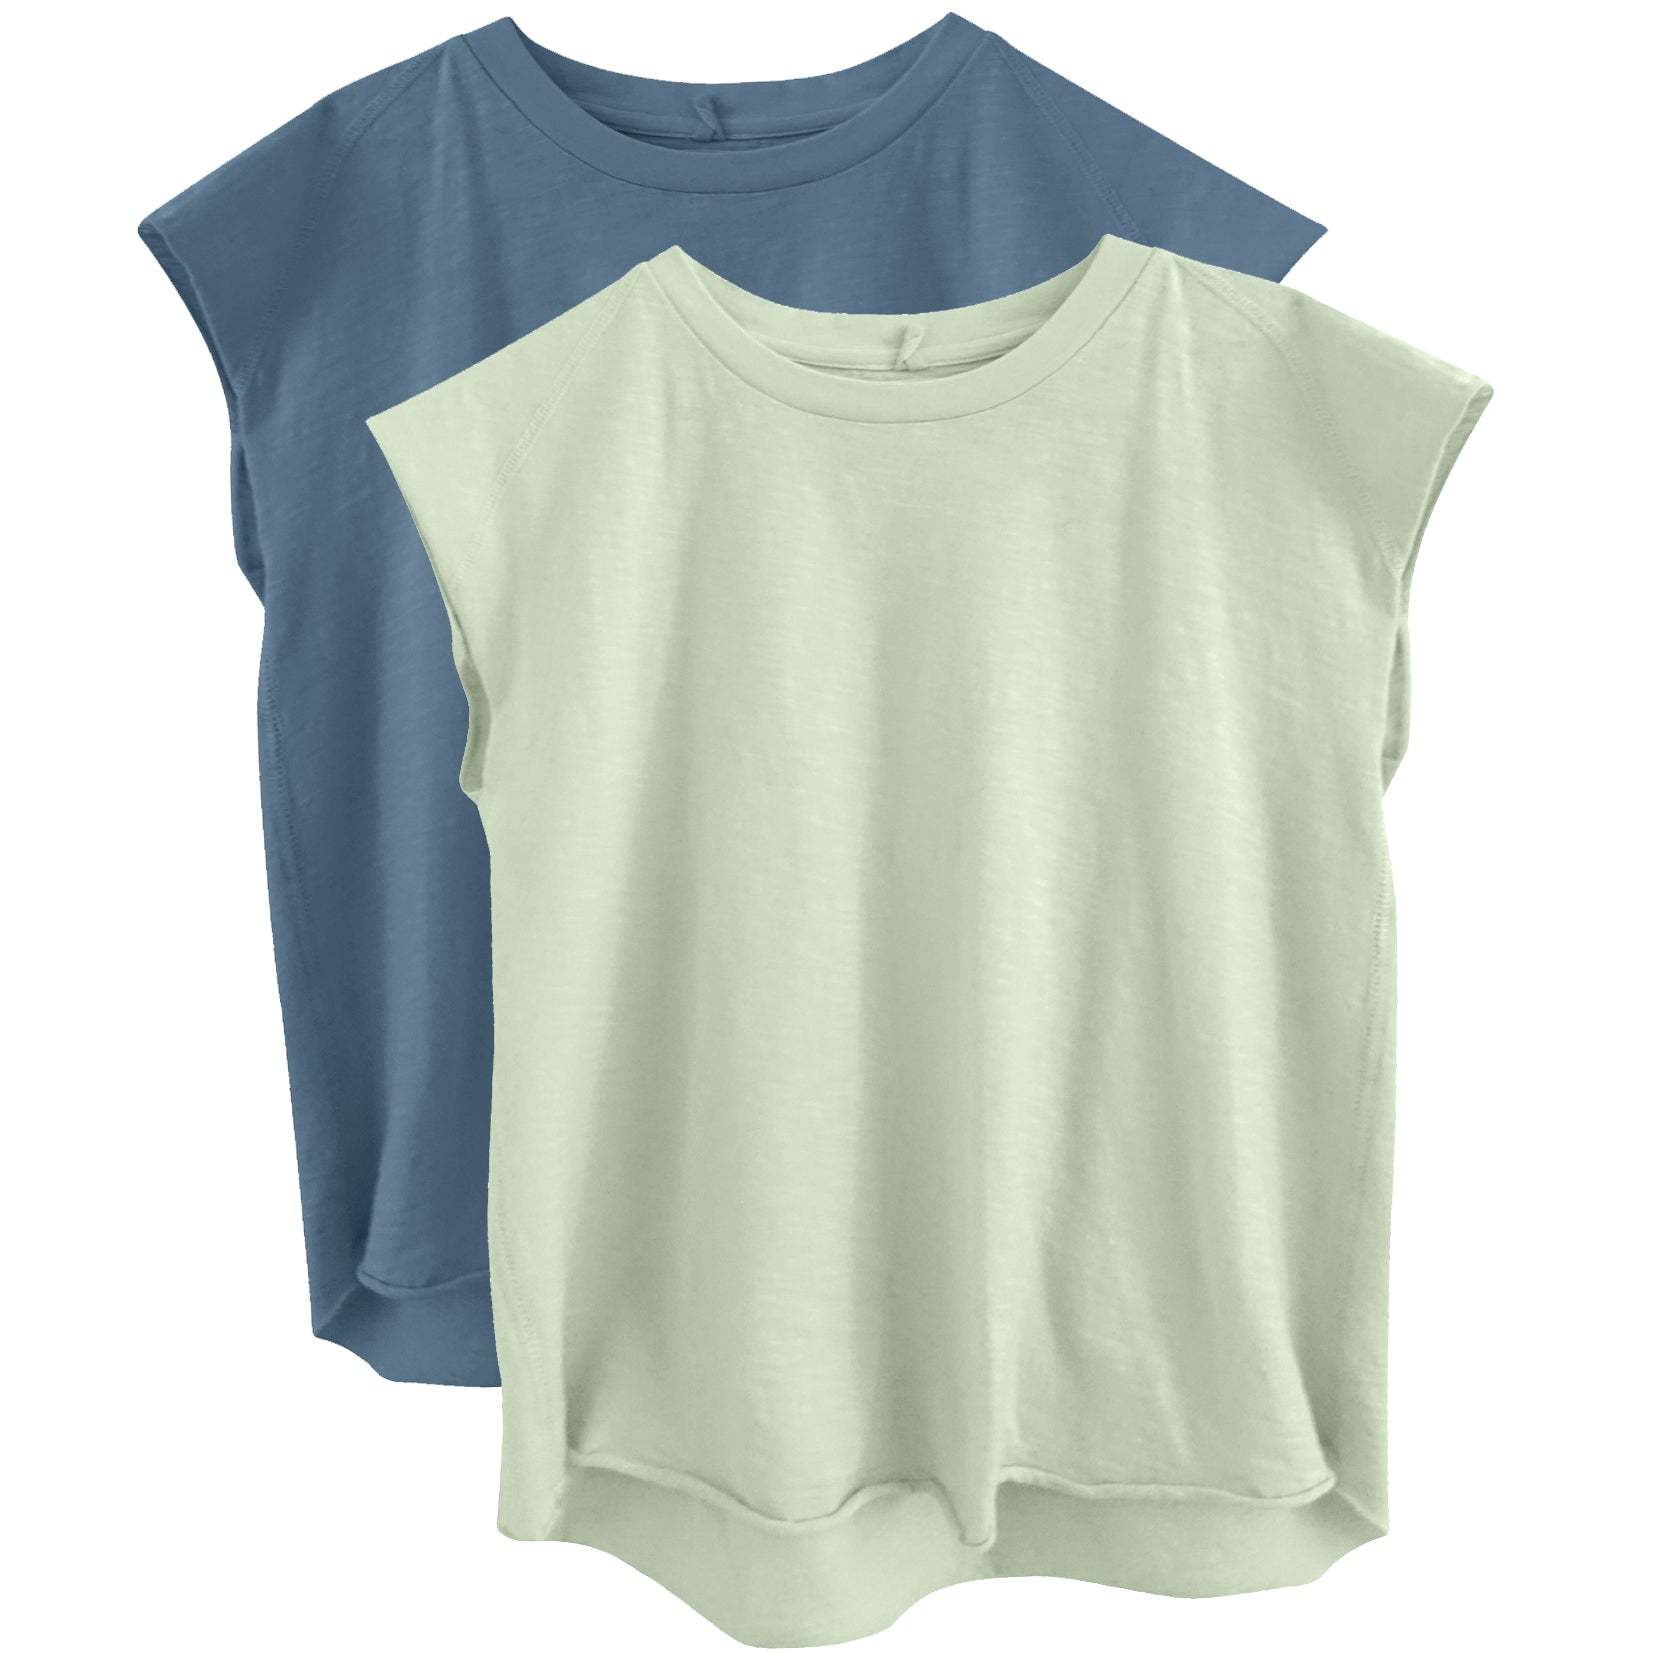 yoya, kids, boys, girls, nico nico, summer, casual, lounge, basic, sleeveless, crewneck, muscle tshirt